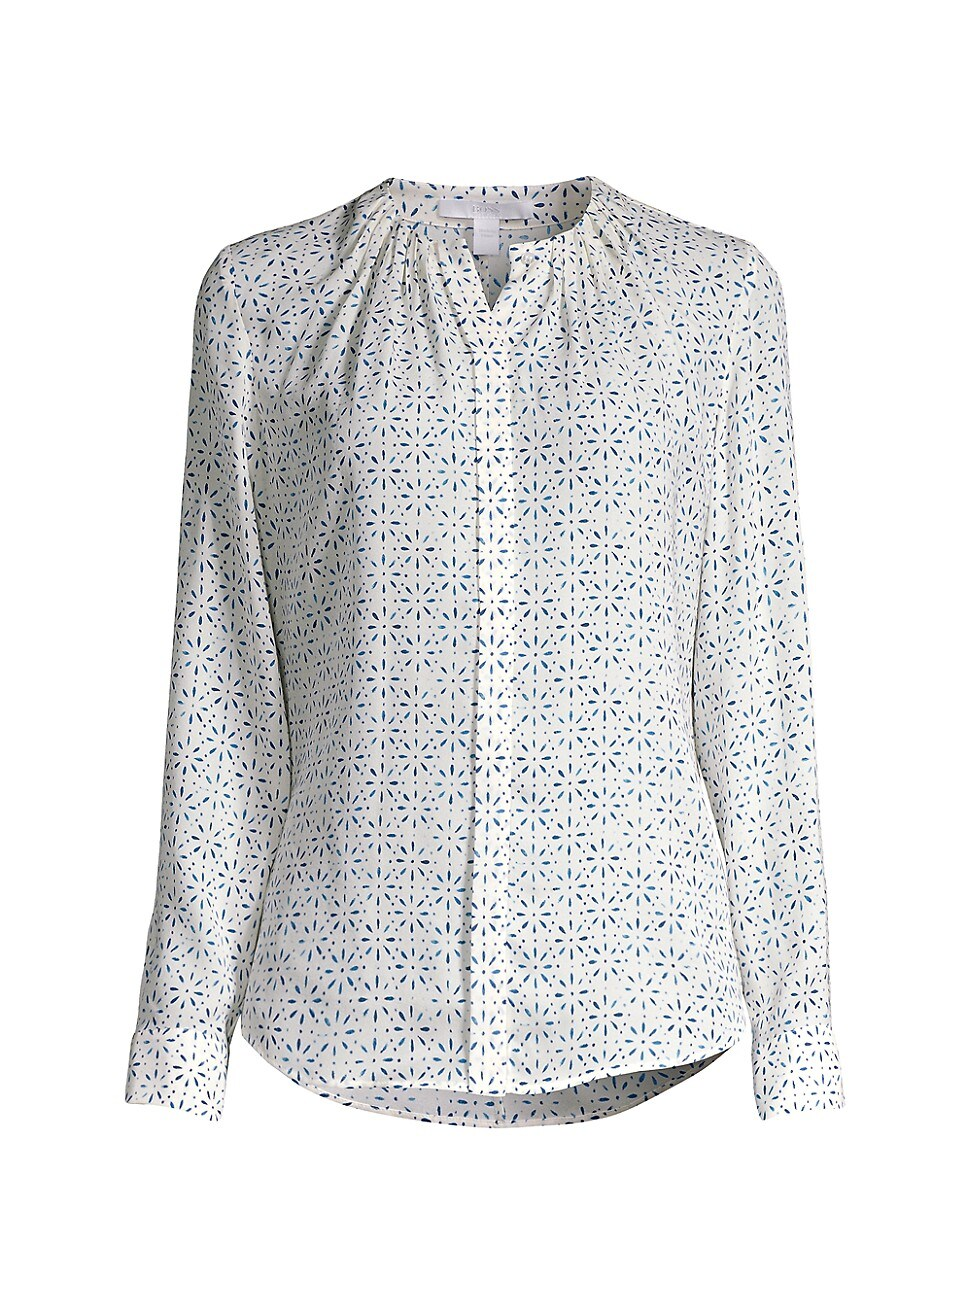 Hugo Boss WOMEN'S BANORA PRINT SILK BLOUSE